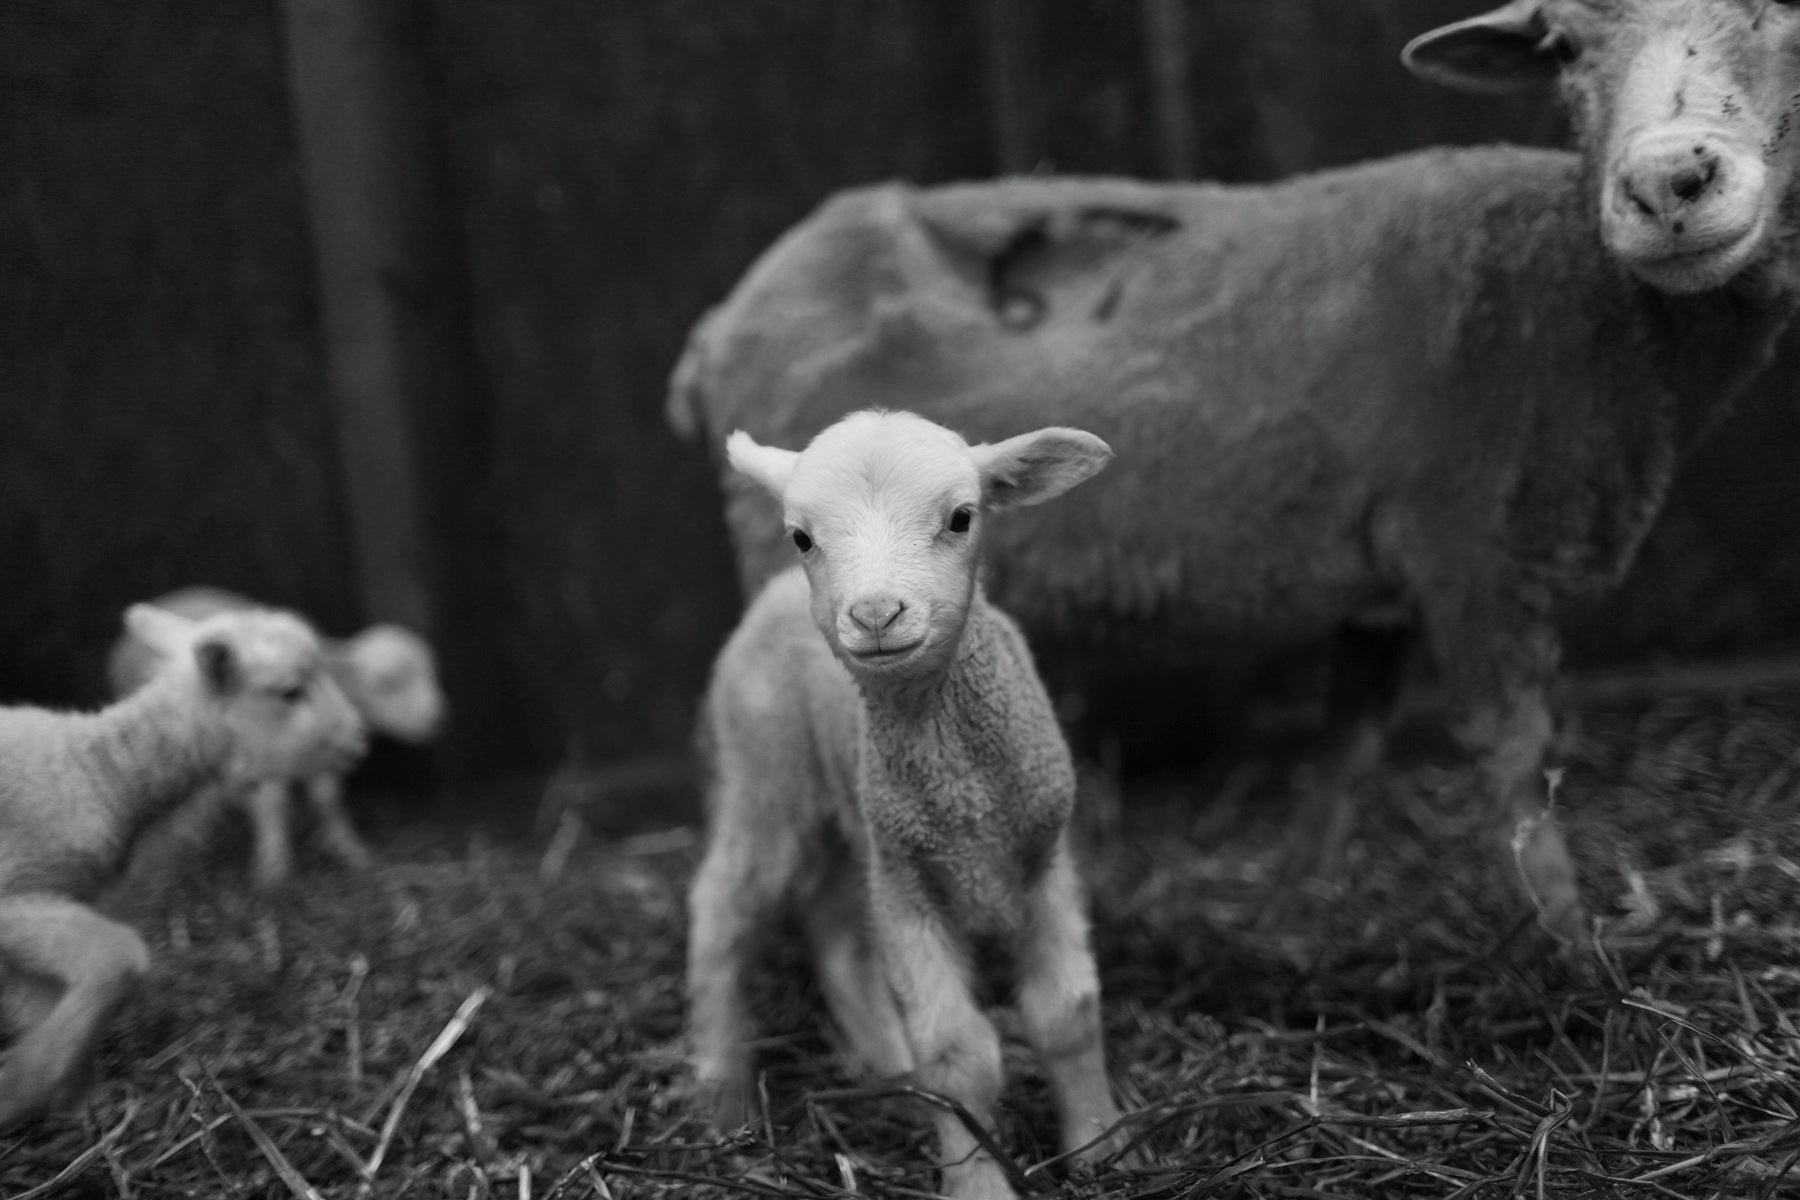 Baby lamb from Finisterre's Bowmont Merino flock farmed by Lesley Prior